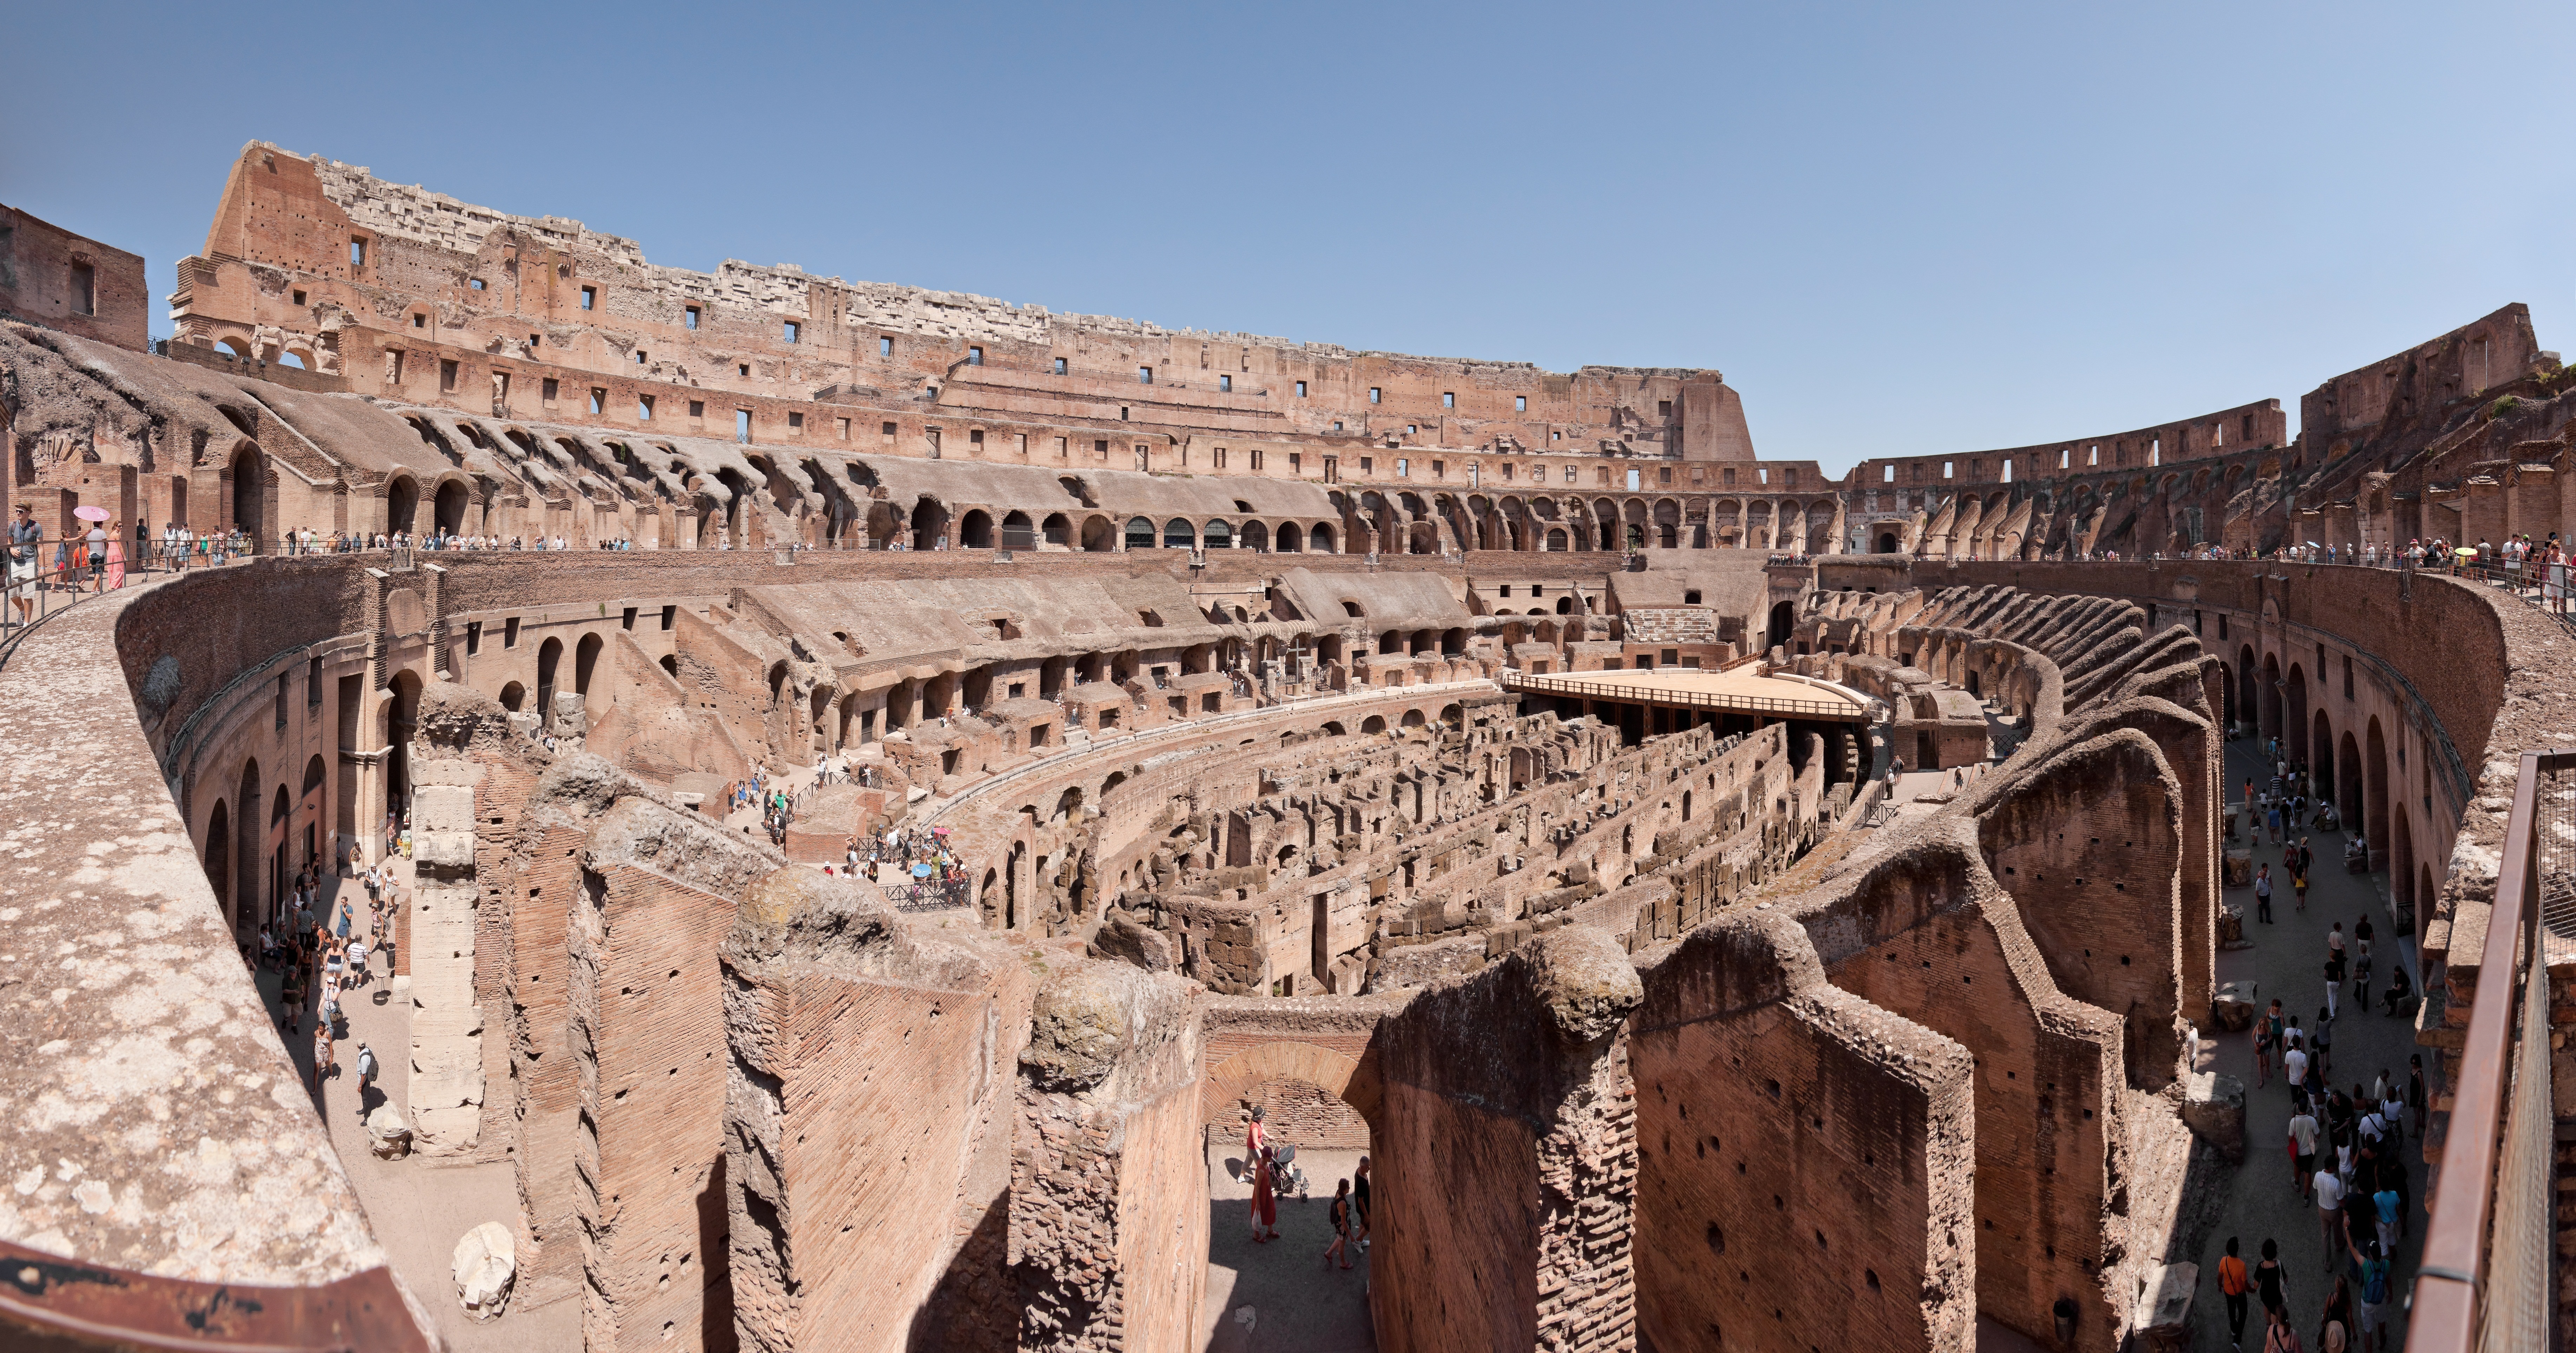 File:Colosseo di Roma panoramic.jpg - Wikipedia, the free encyclopediaroma